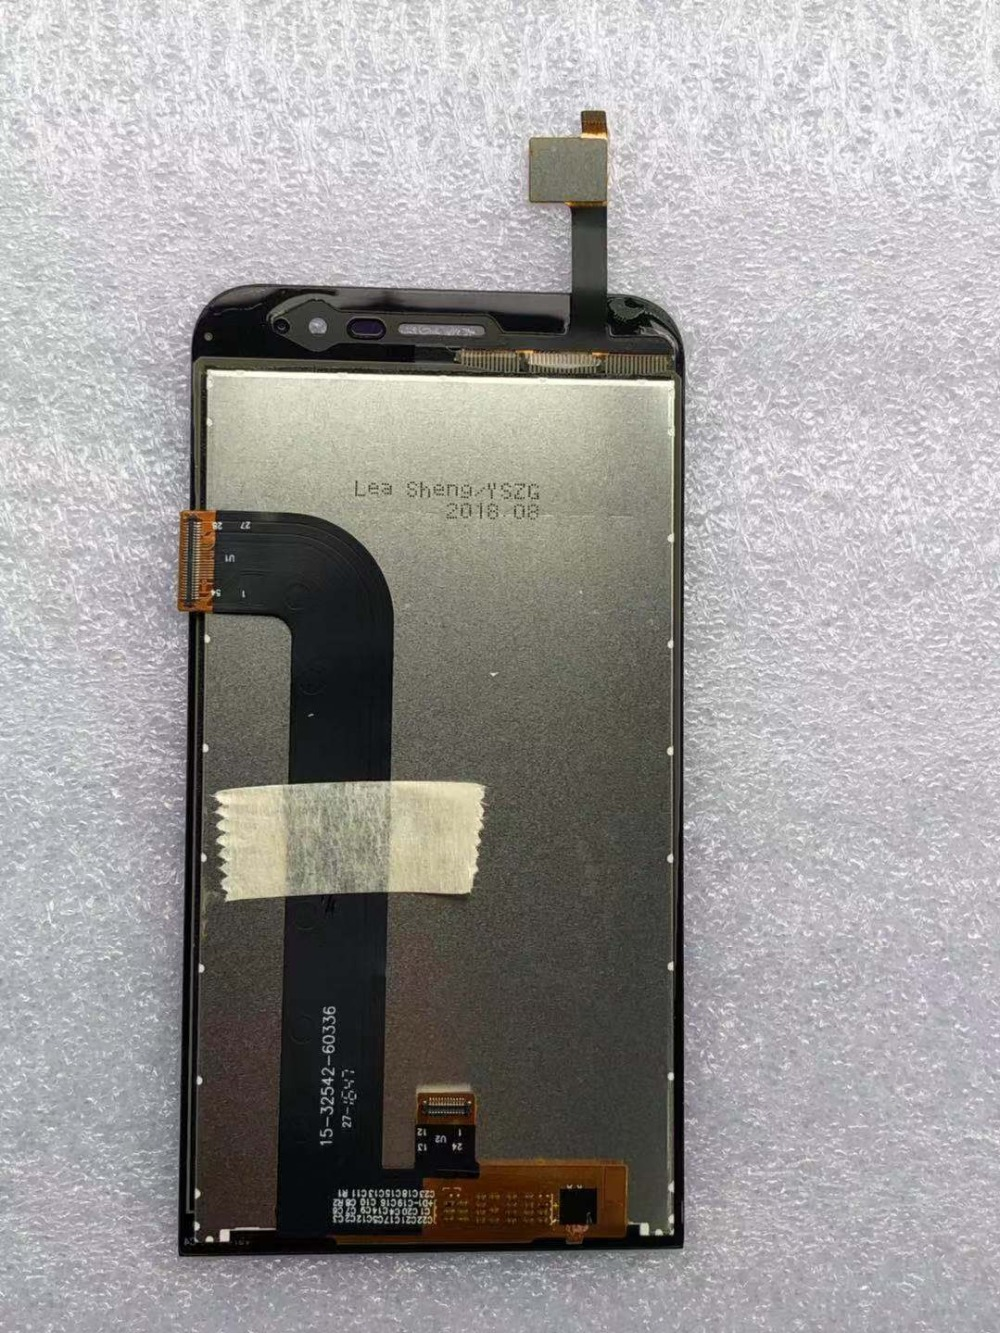 M For Asus Zenfone Go ZB500KG ZB500KL ZB501KL <font><b>ZB551KL</b></font> ZB553KL ZB555KL LCD Screen <font><b>Display</b></font> with Touch digitizer assembly image